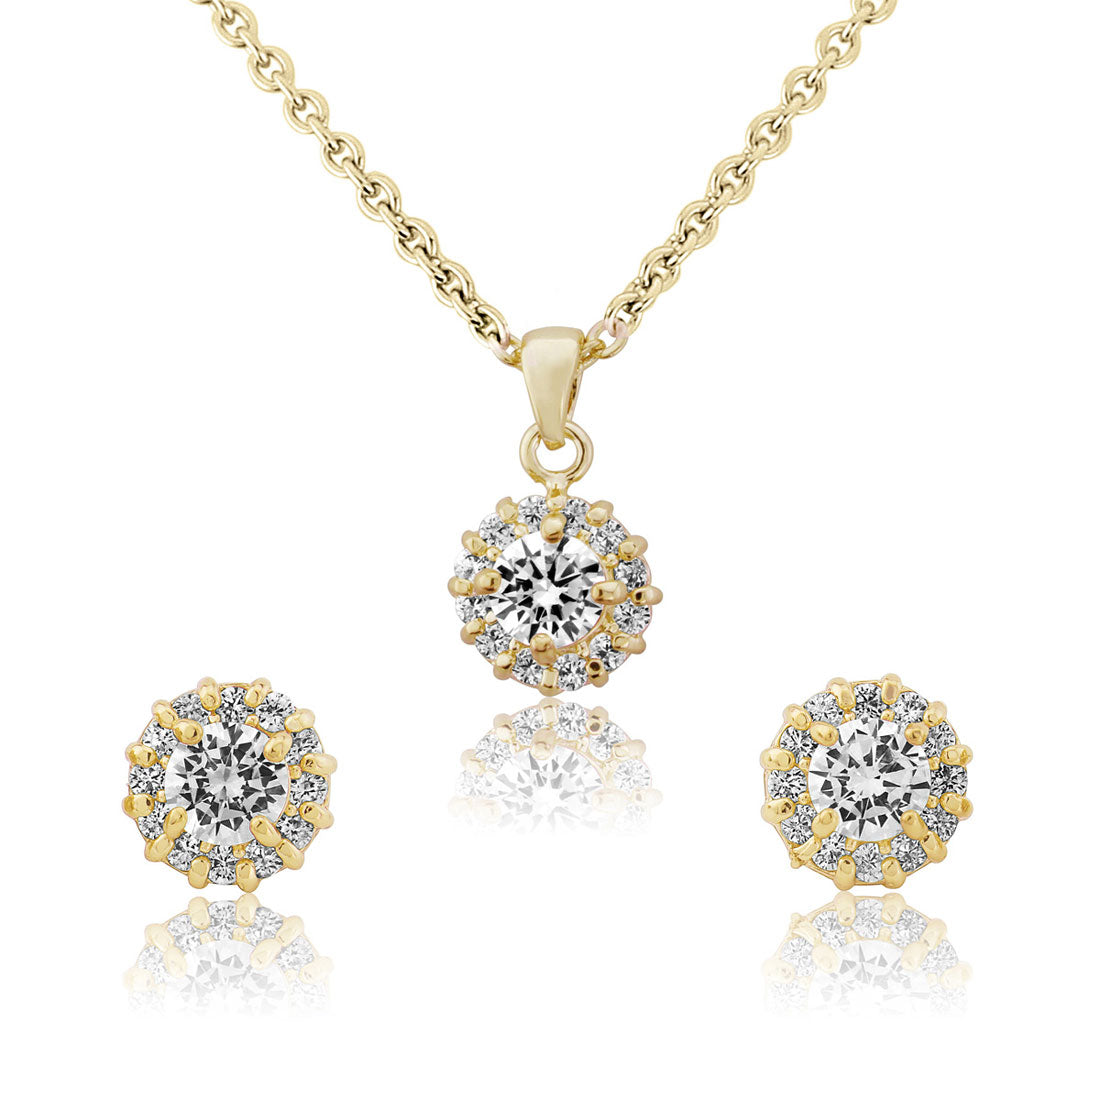 Golden Starlet Cubic Zirconia Jewellery Set with stud earrings and pendant